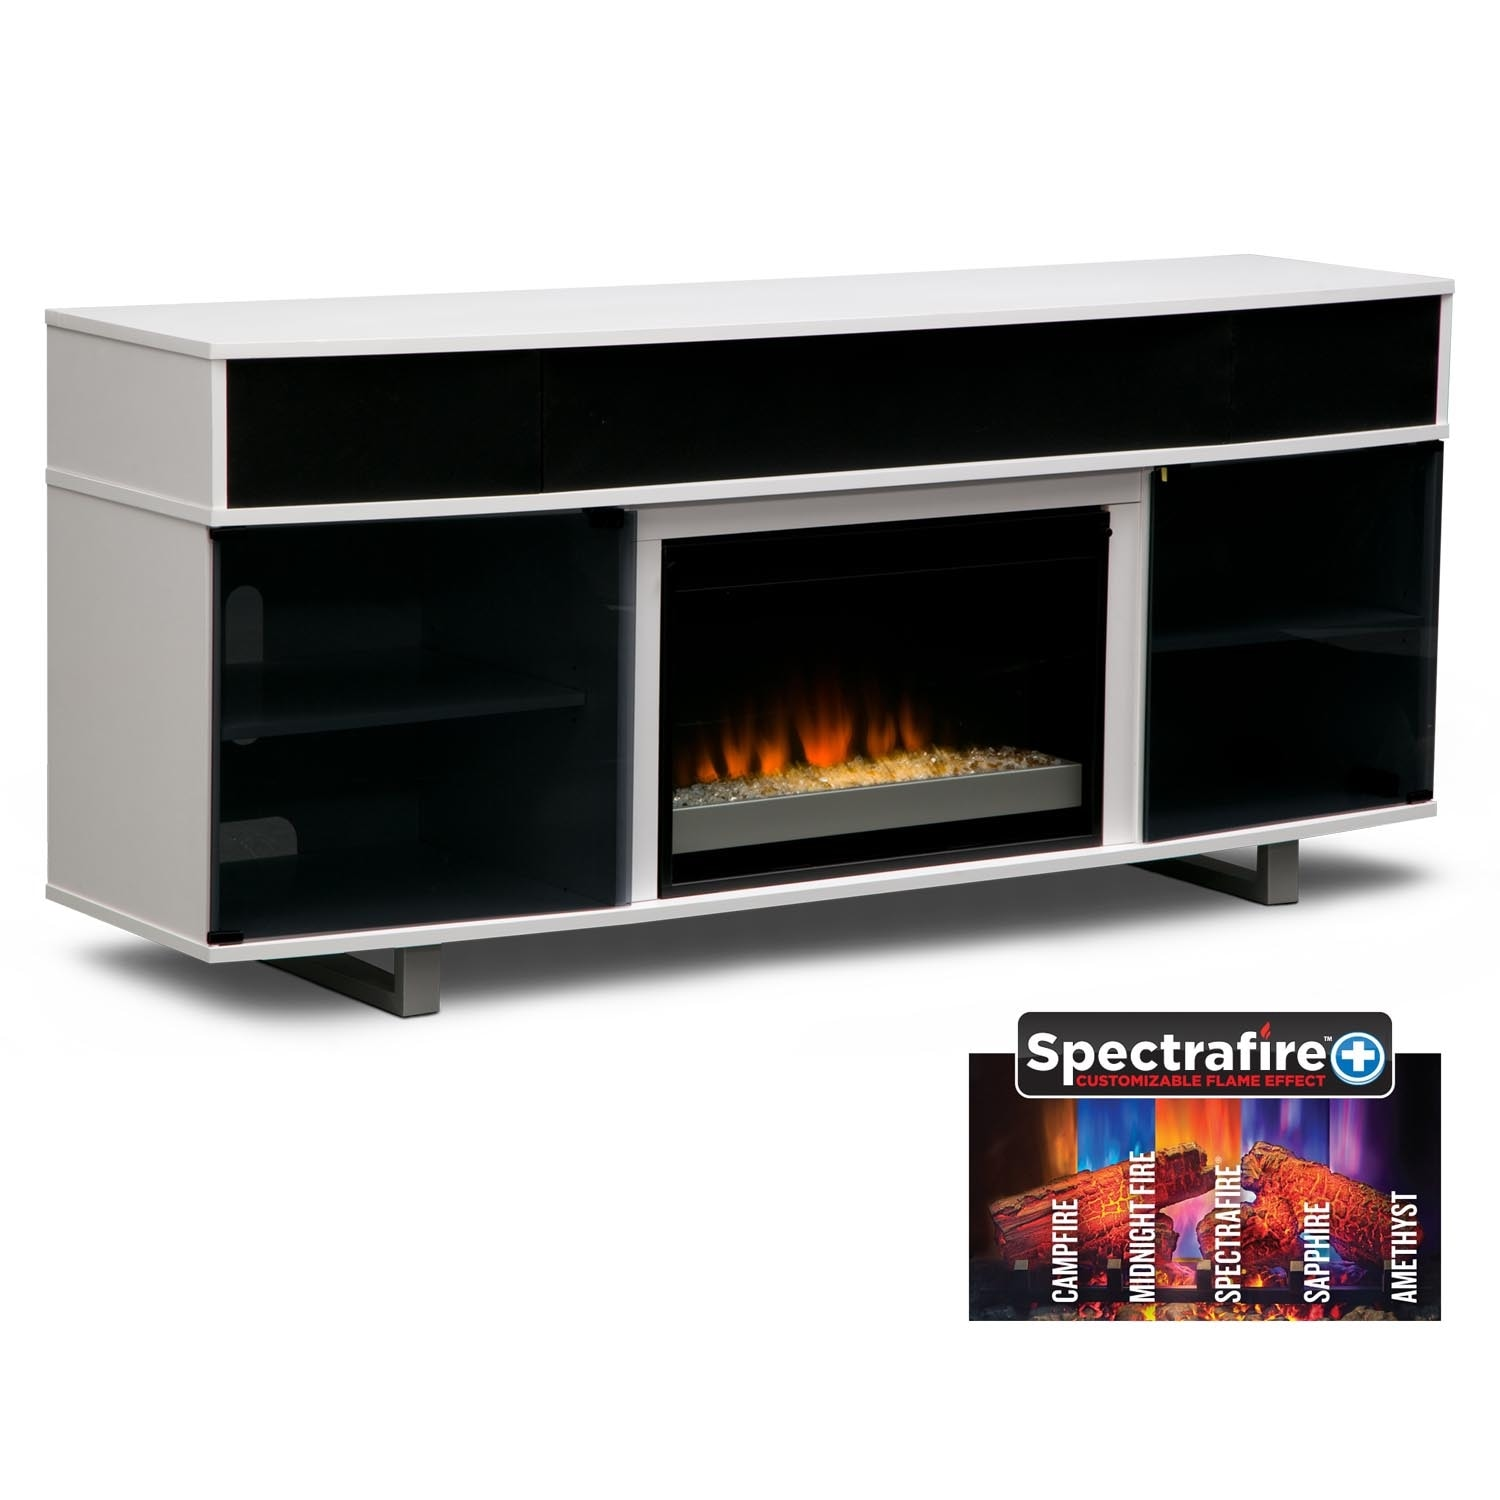 pacer  contemporary fireplace tv stand with sound bar  whiteentertainment furniture  pacer  contemporary fireplace tv stand . pacer  contemporary fireplace tv stand with sound bar  white